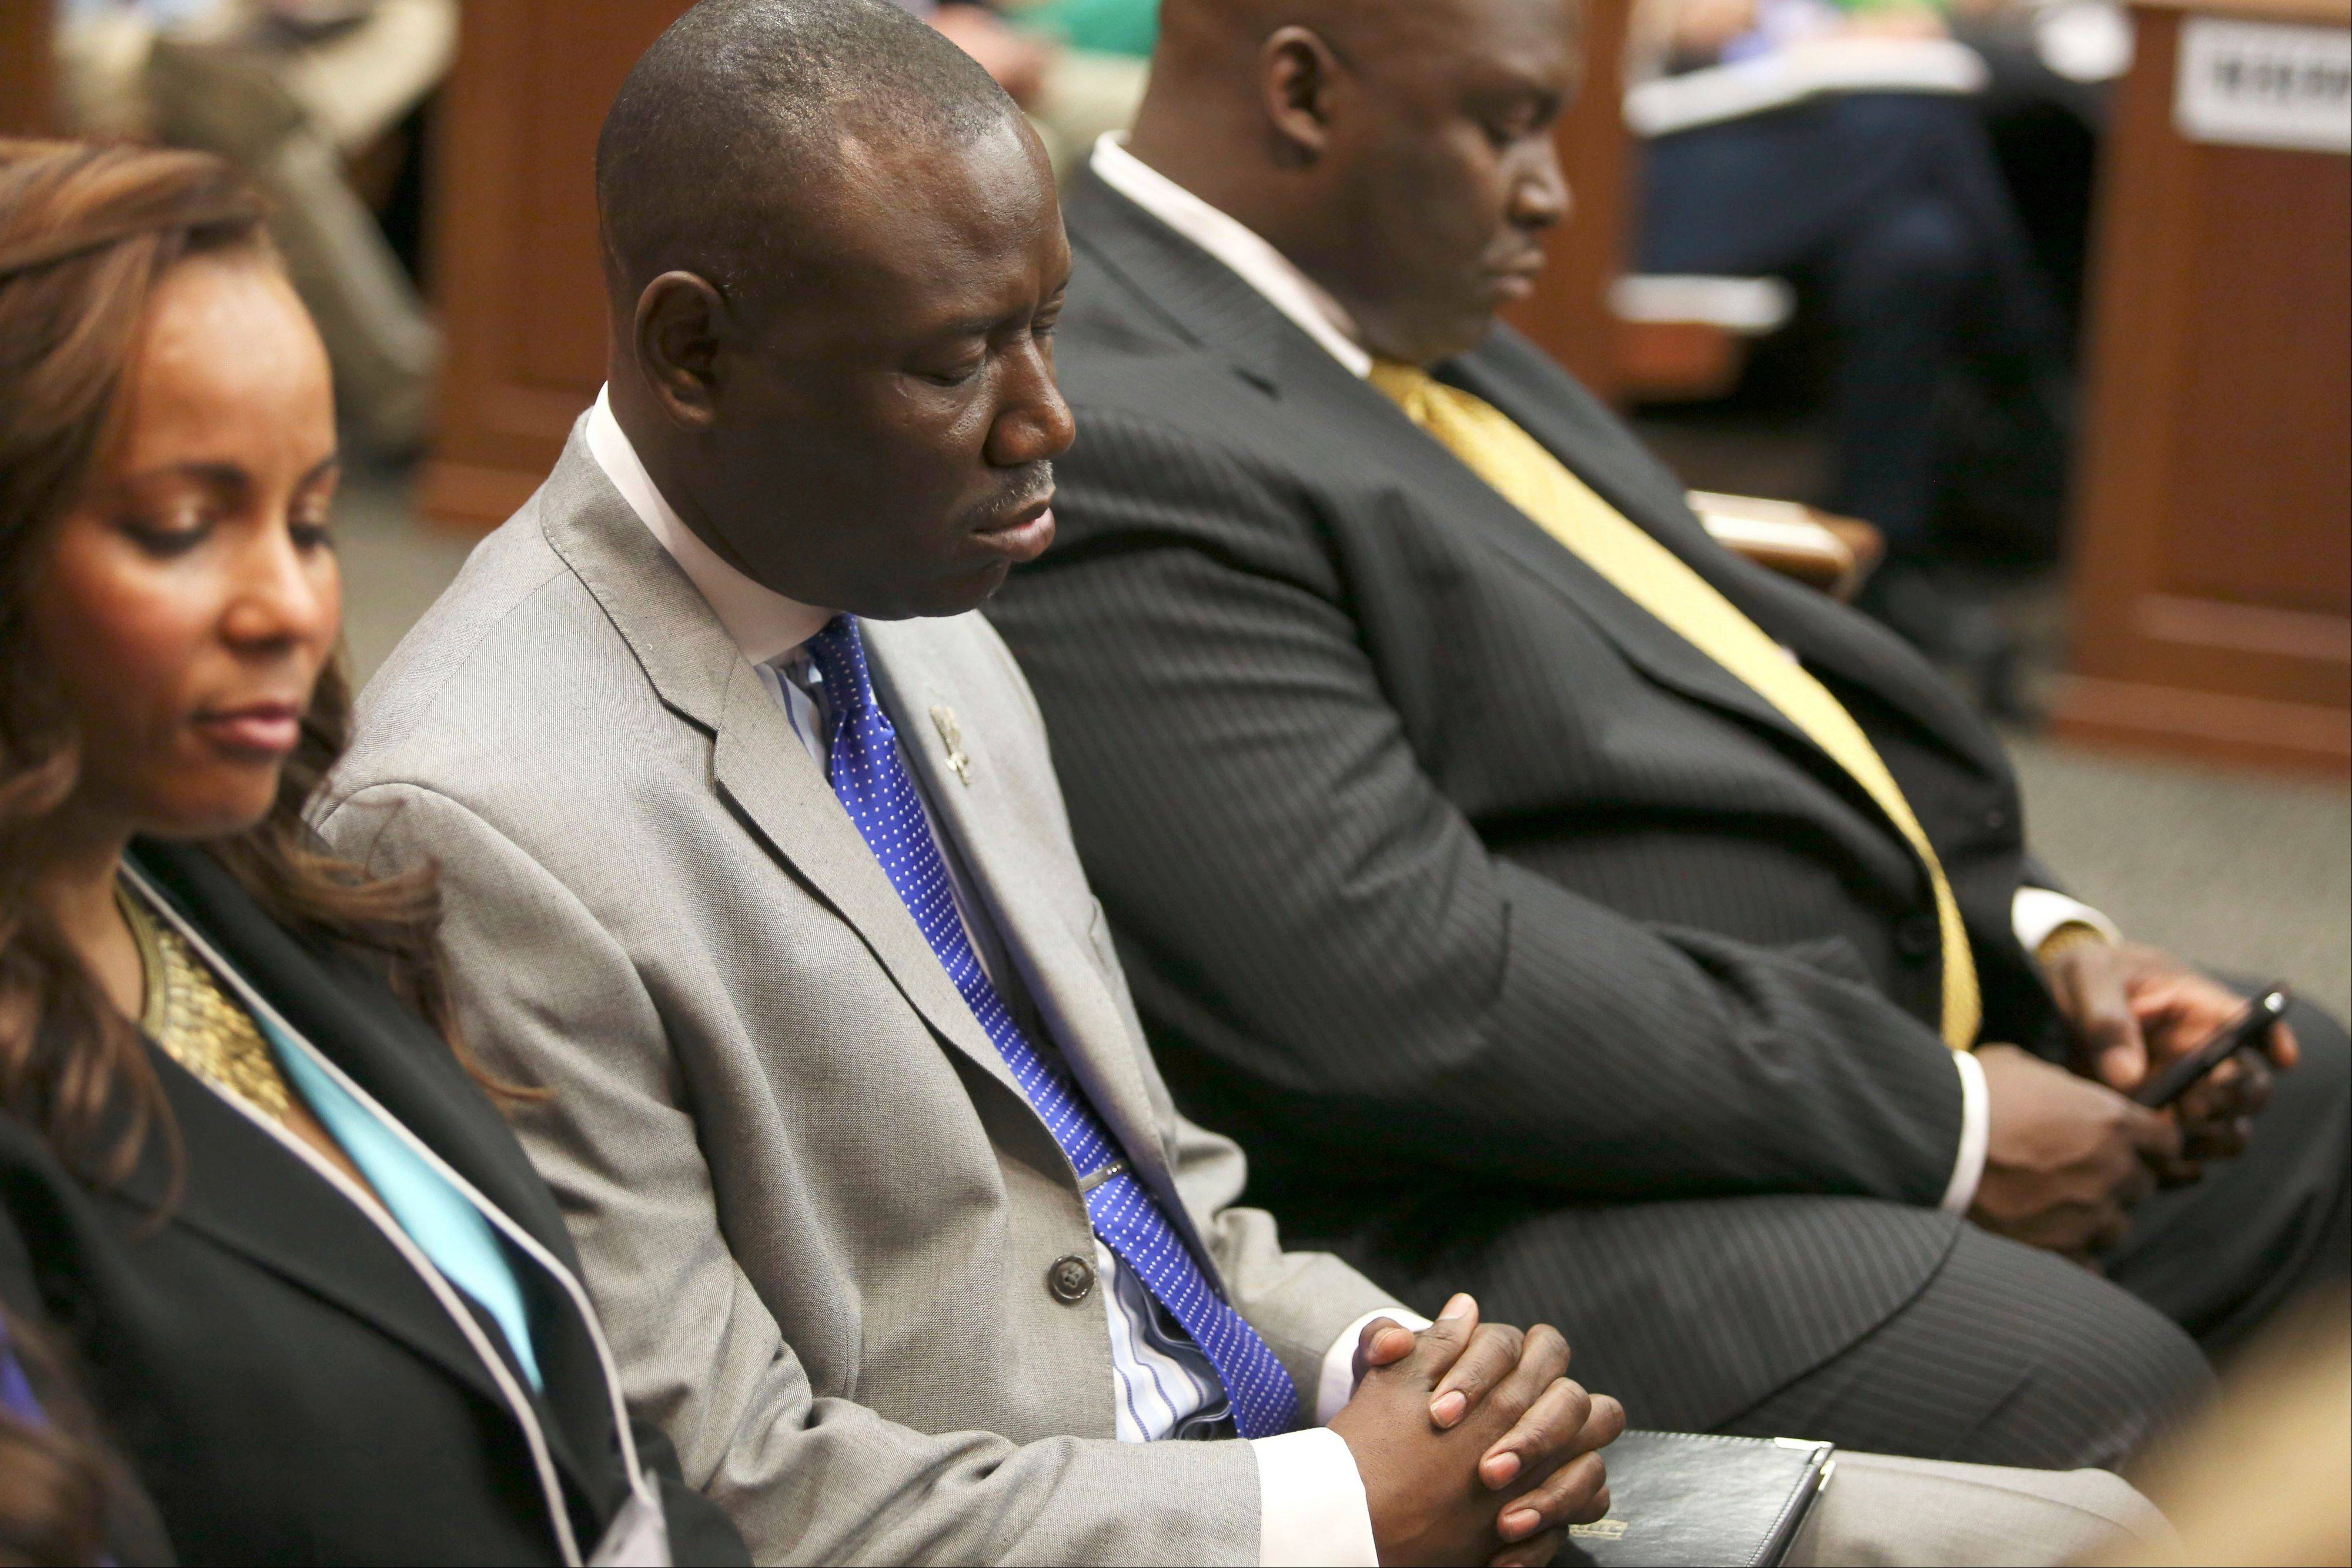 Attorneys Natalie Jackson, Benjamin Crump, and Daryl Parks, from left, sit in for the Trayvon Martin family during George Zimmerman's trial in Seminole circuit court in Sanford, Fla. on Saturday, July 13, 2013. Jurors found Zimmerman not guilty of second-degree murder in the fatal shooting of 17-year-old Martin in Sanford, Fla. The six-member, all-woman jury deliberated for more than 15 hours over two days before reaching their decision Saturday night.